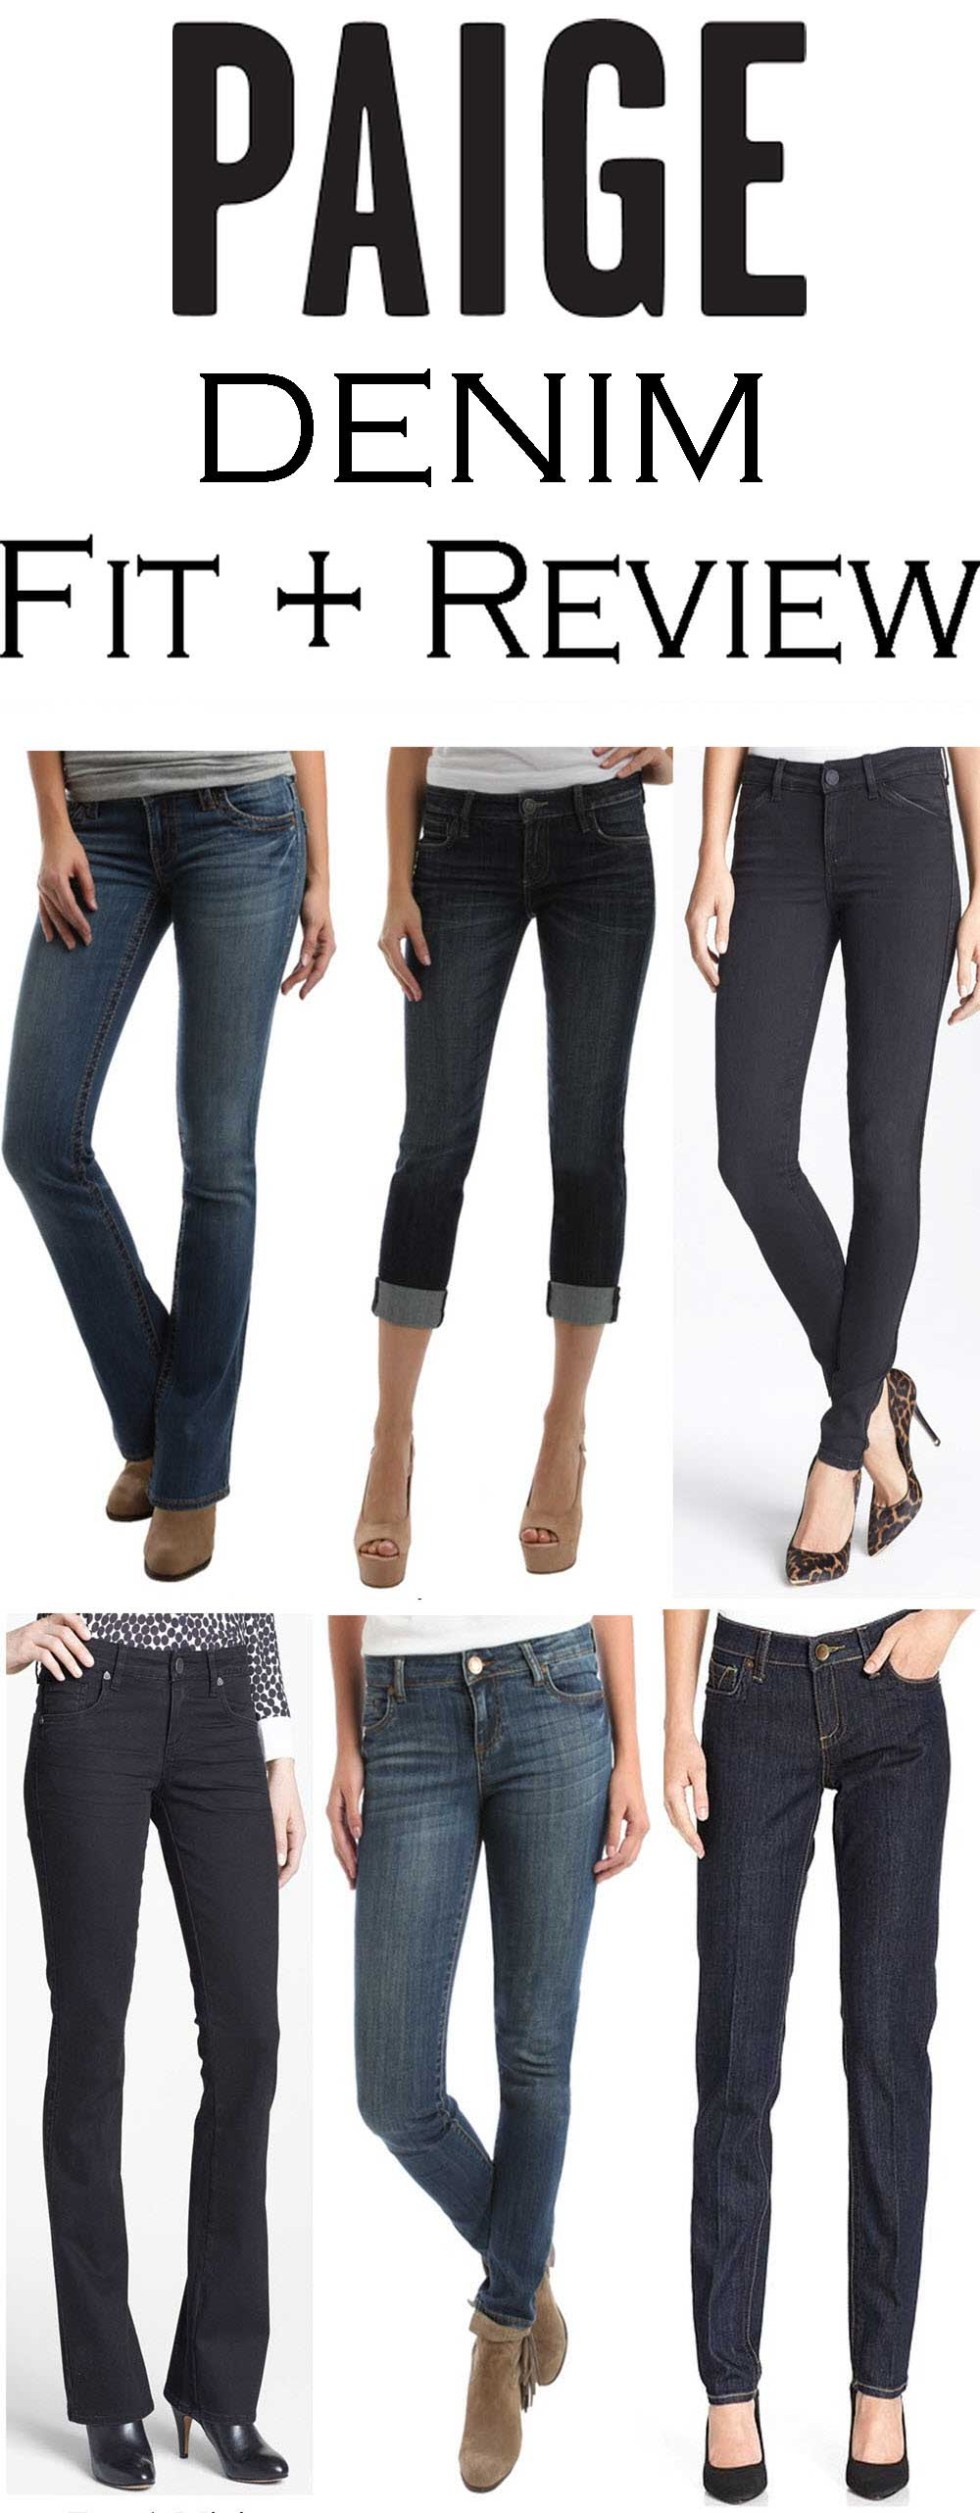 Paige Denim Fit Review + How do Paige Jeans Fit? #denim #fashionblog #fashionblogger #denim #jeansreview #denimreview #paigedenim